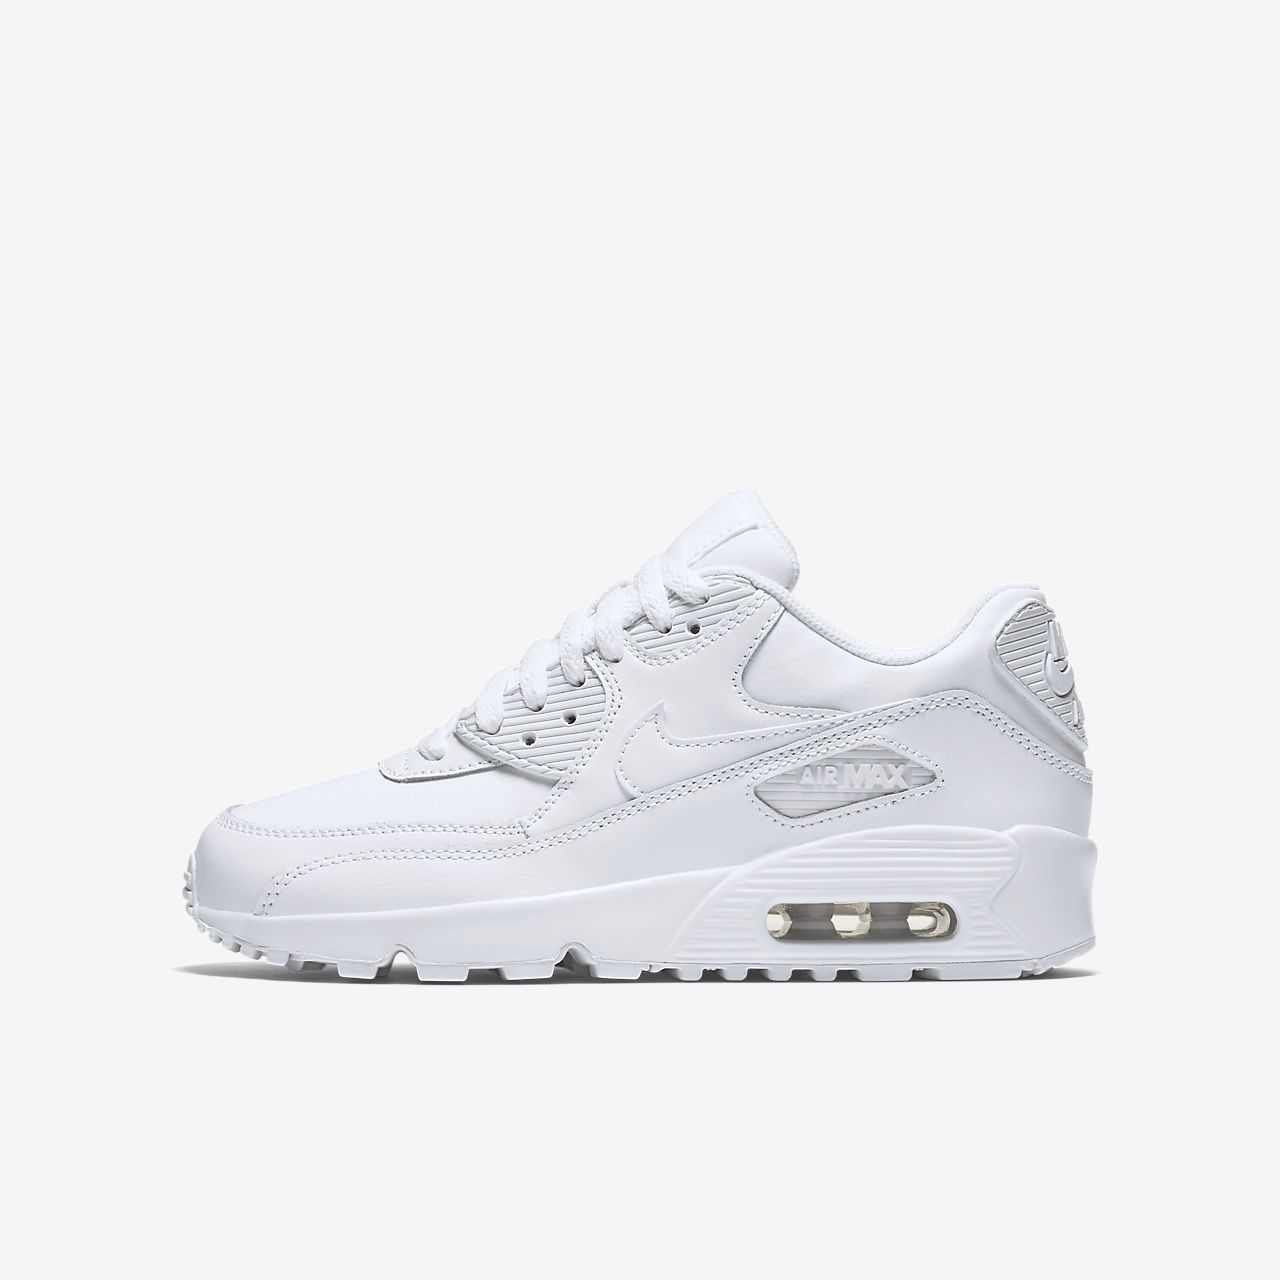 Nike Air Max 90 Leather 大童鞋款